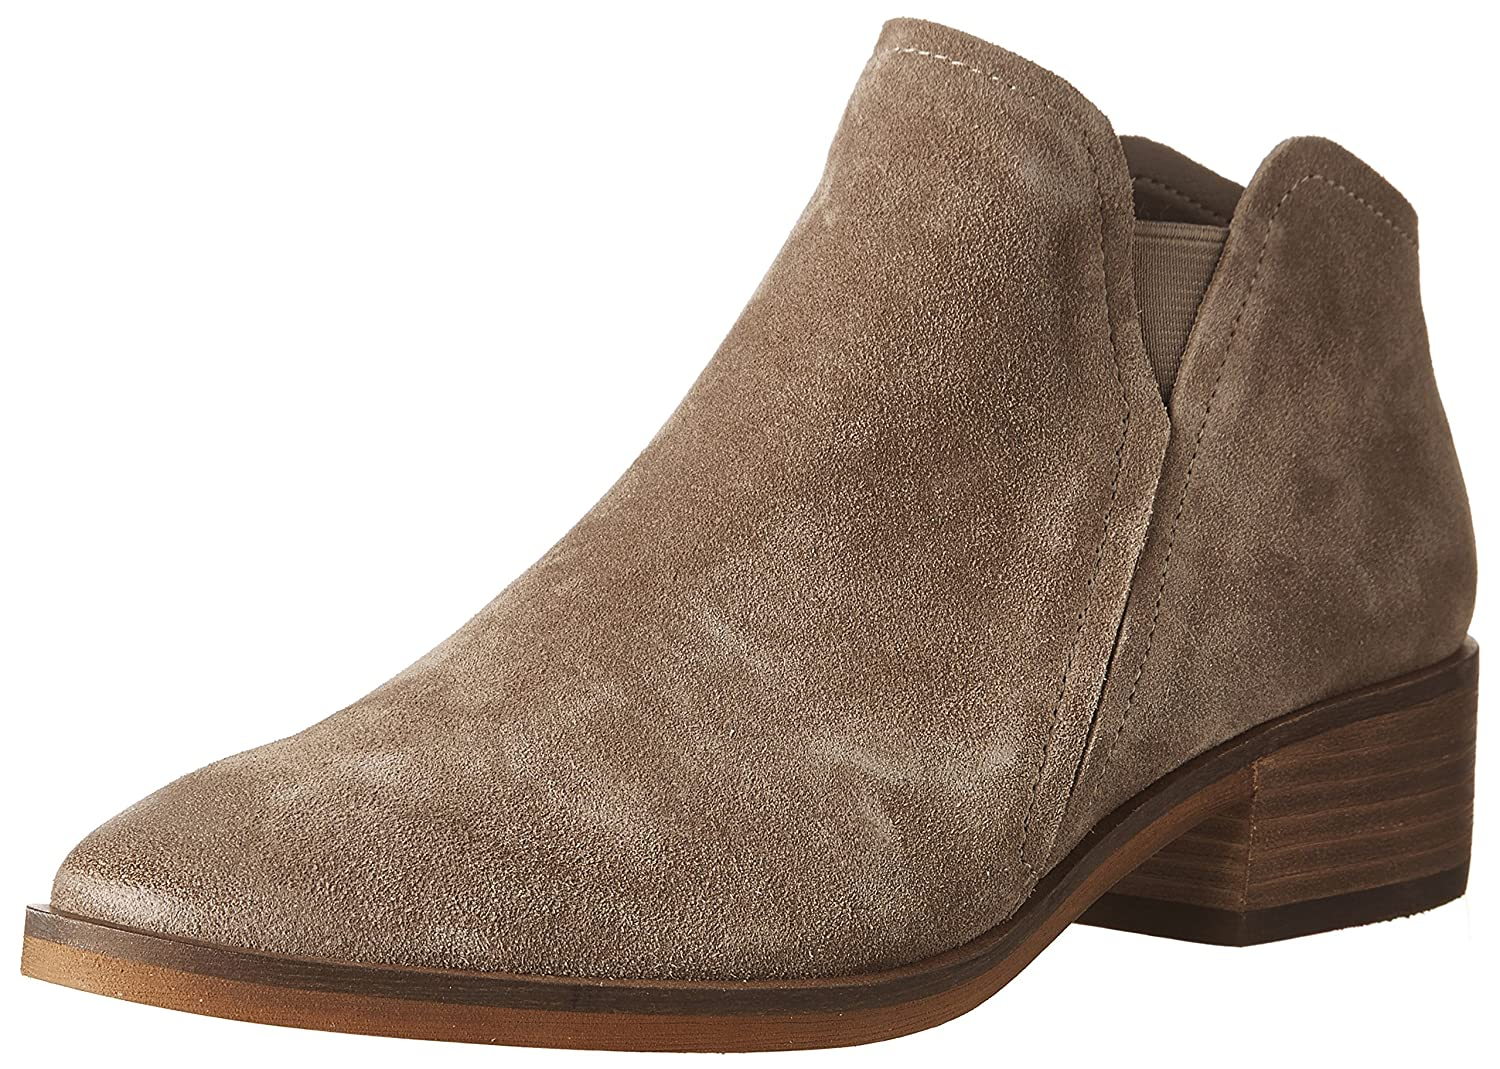 Dolce Vita Women's Tay Ankle Boot B06XK8CZ8X 6.5 B(M) US|Dark Taupe Suede